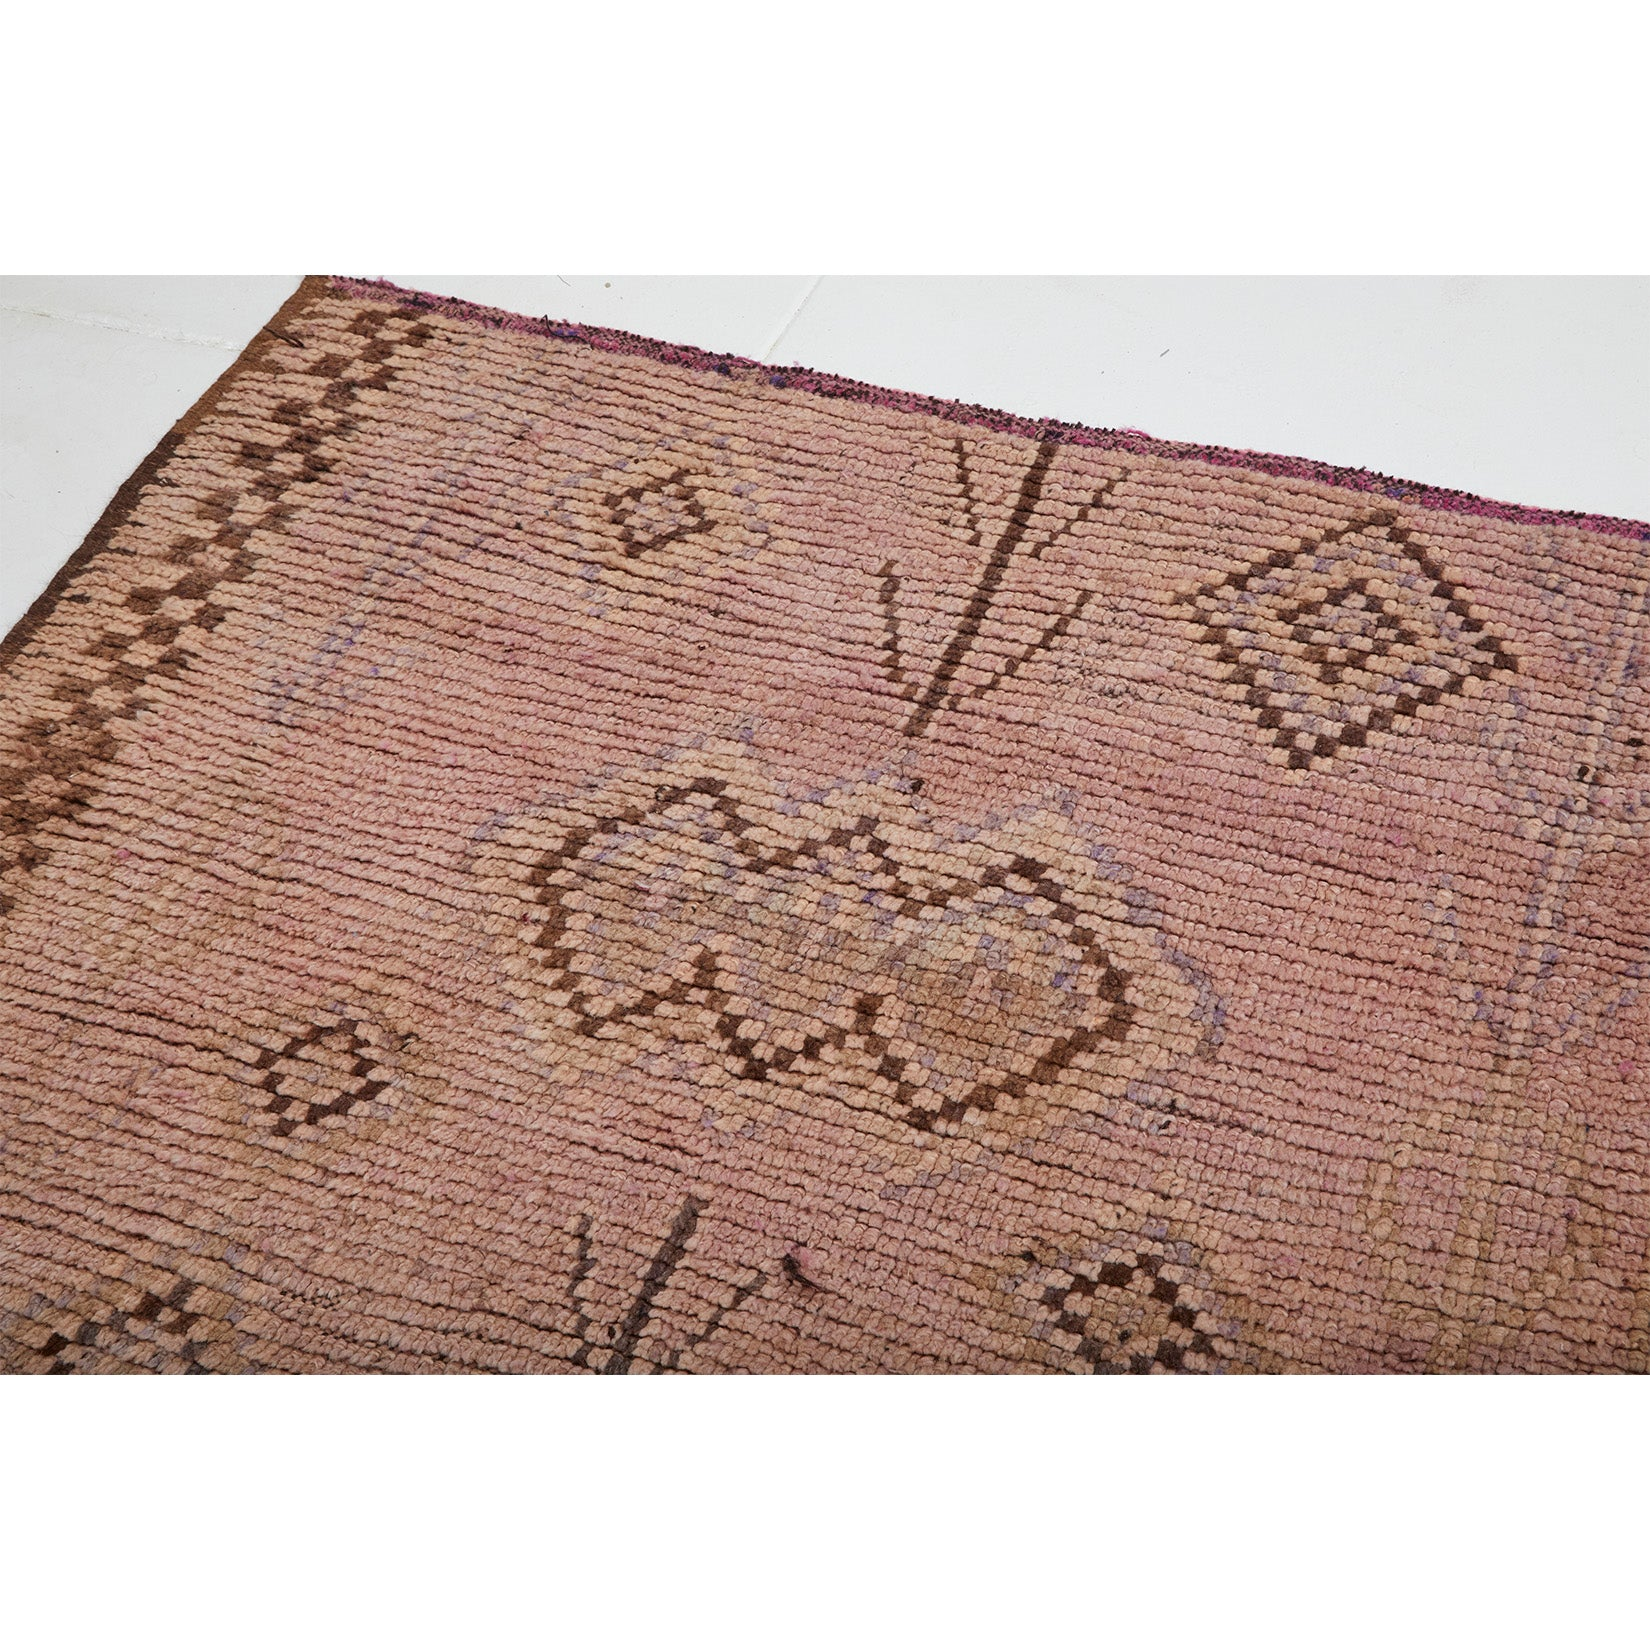 Detail of checkerboard vintage Moroccan rug with abstract diamond designs in brown and faded colors